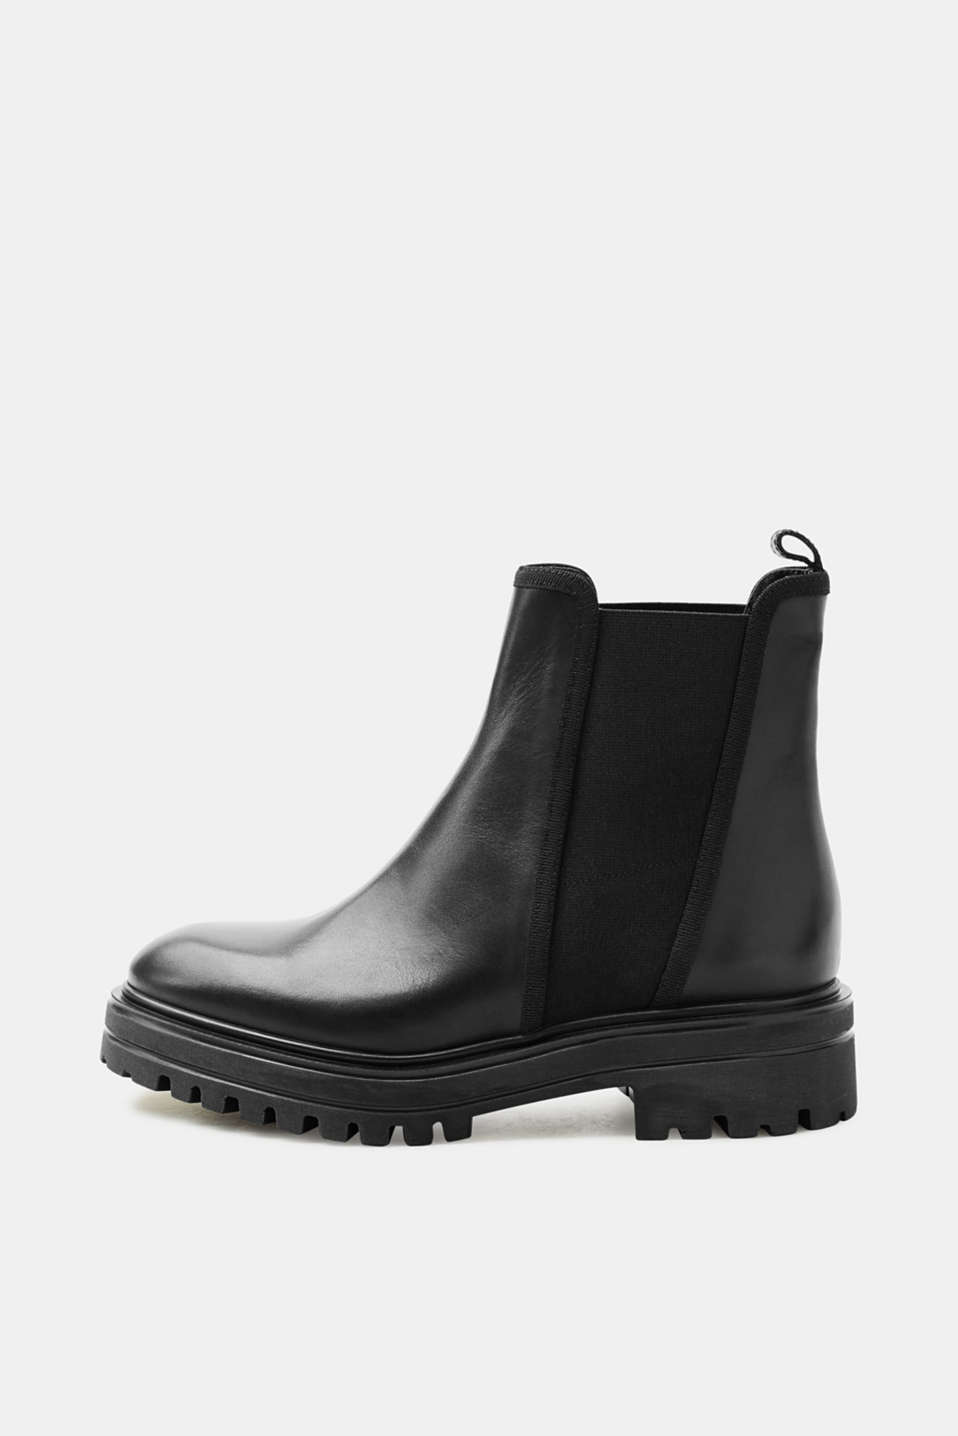 Esprit - Chelsea boots with a tread sole